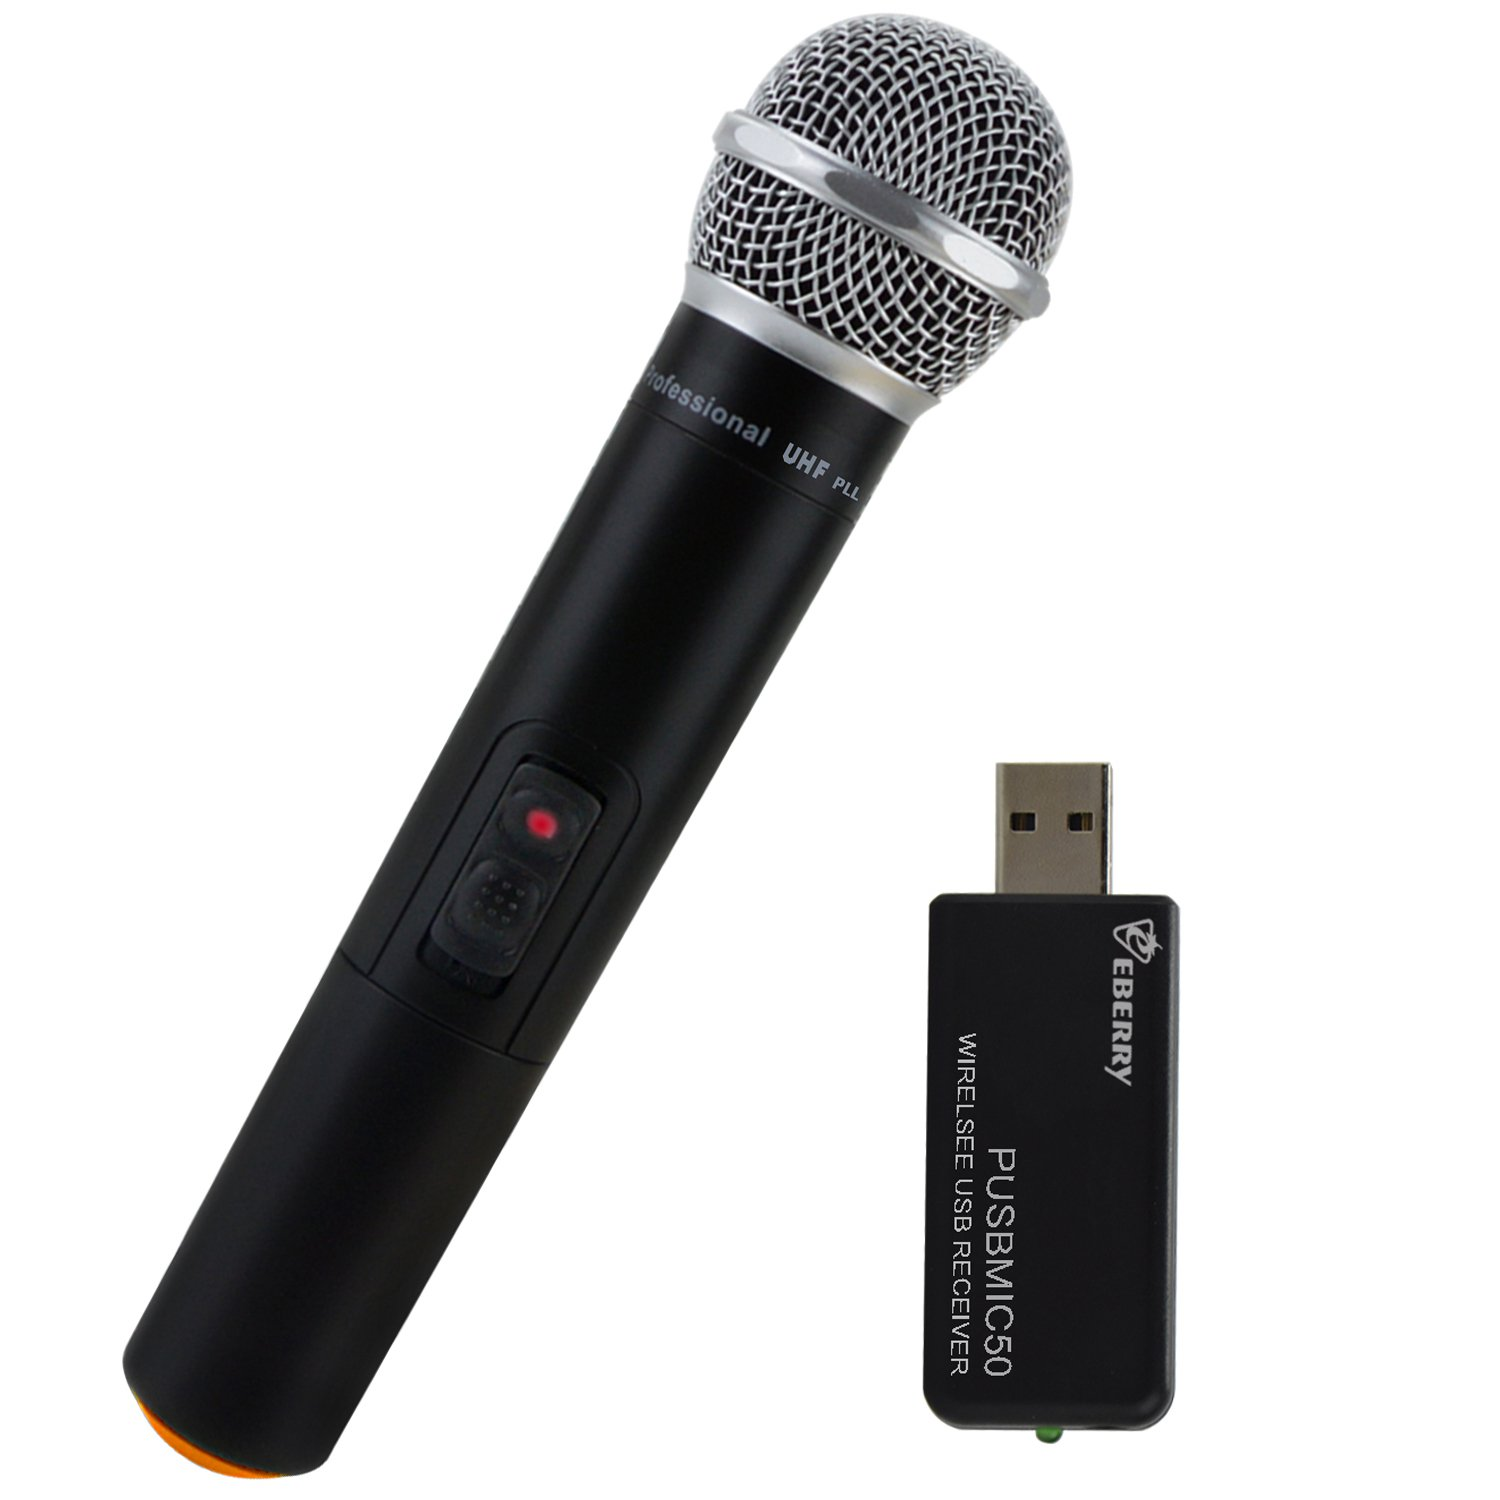 eBerry Ultra High Frequency UHF 2.4GHz USB Wireless Handheld Microphone System for Karaoke, Conference Speech, Song Recording, Online Broadcast, Video Chat, Language Training (Frequency: 925.1MHz)